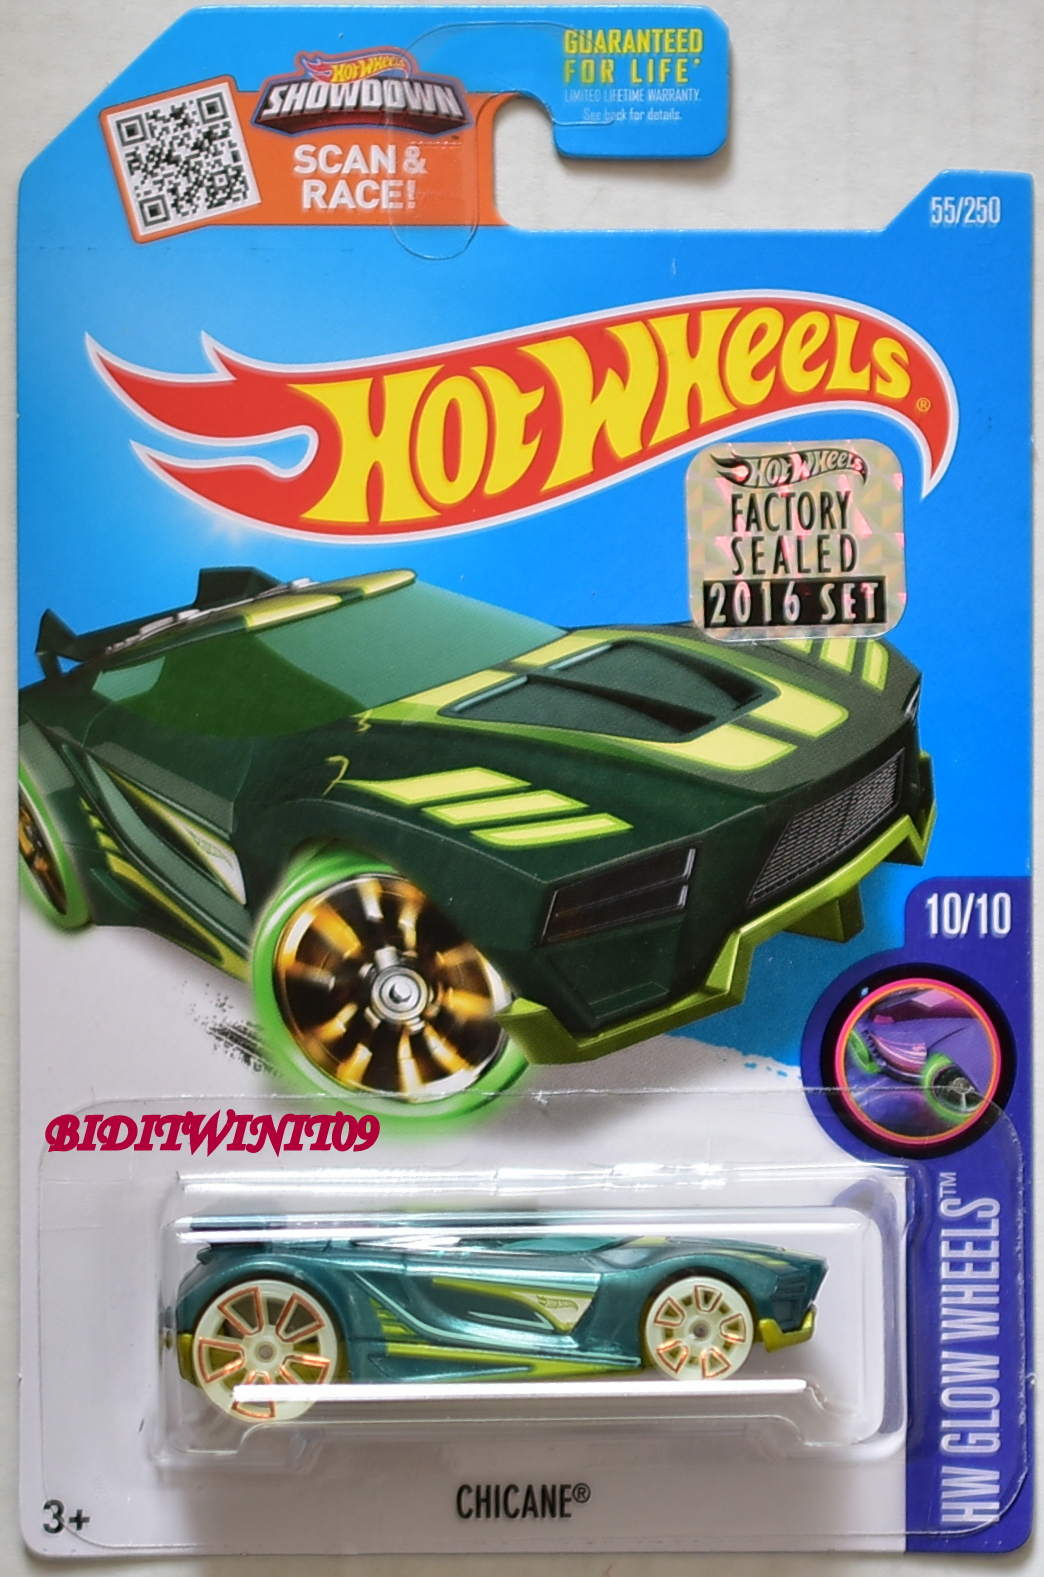 HOT WHEELS 2016 HW GLOW WHEELS CHICANE #10/10 GREEN FACTORY SEALED E+